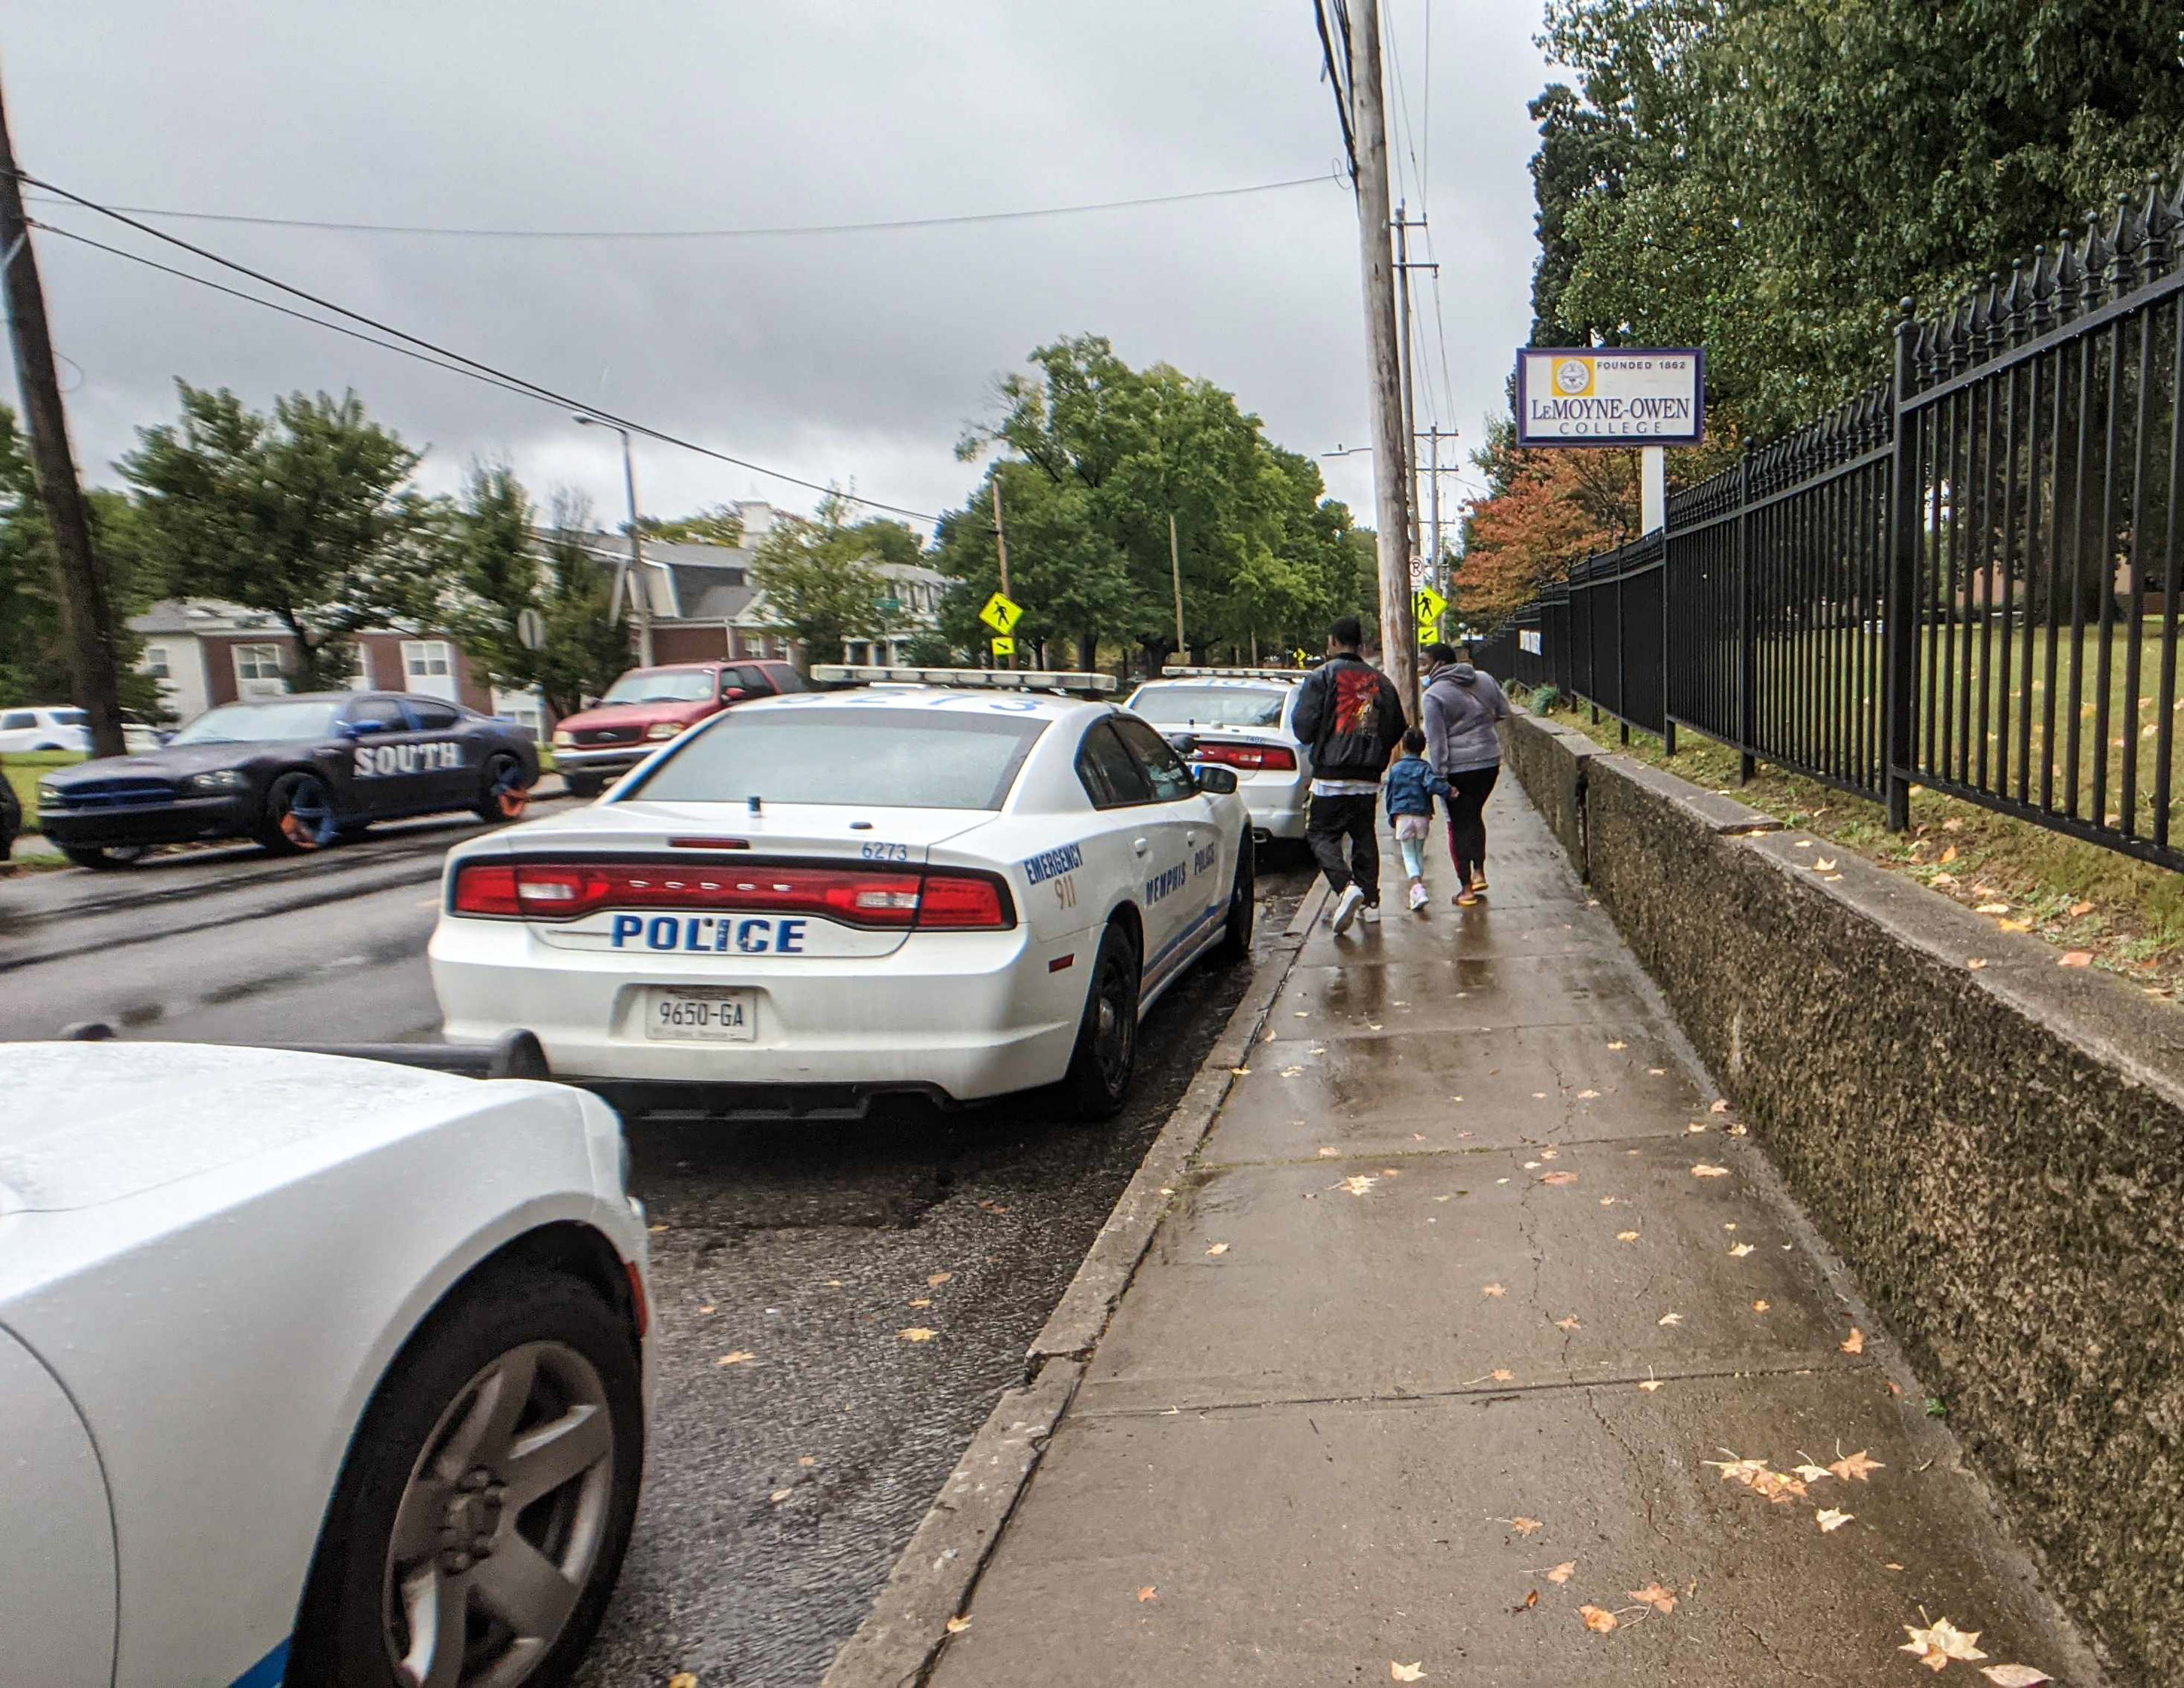 Parents walk past police vehicles following a shooting at Cummings Elementary School in Memphis.